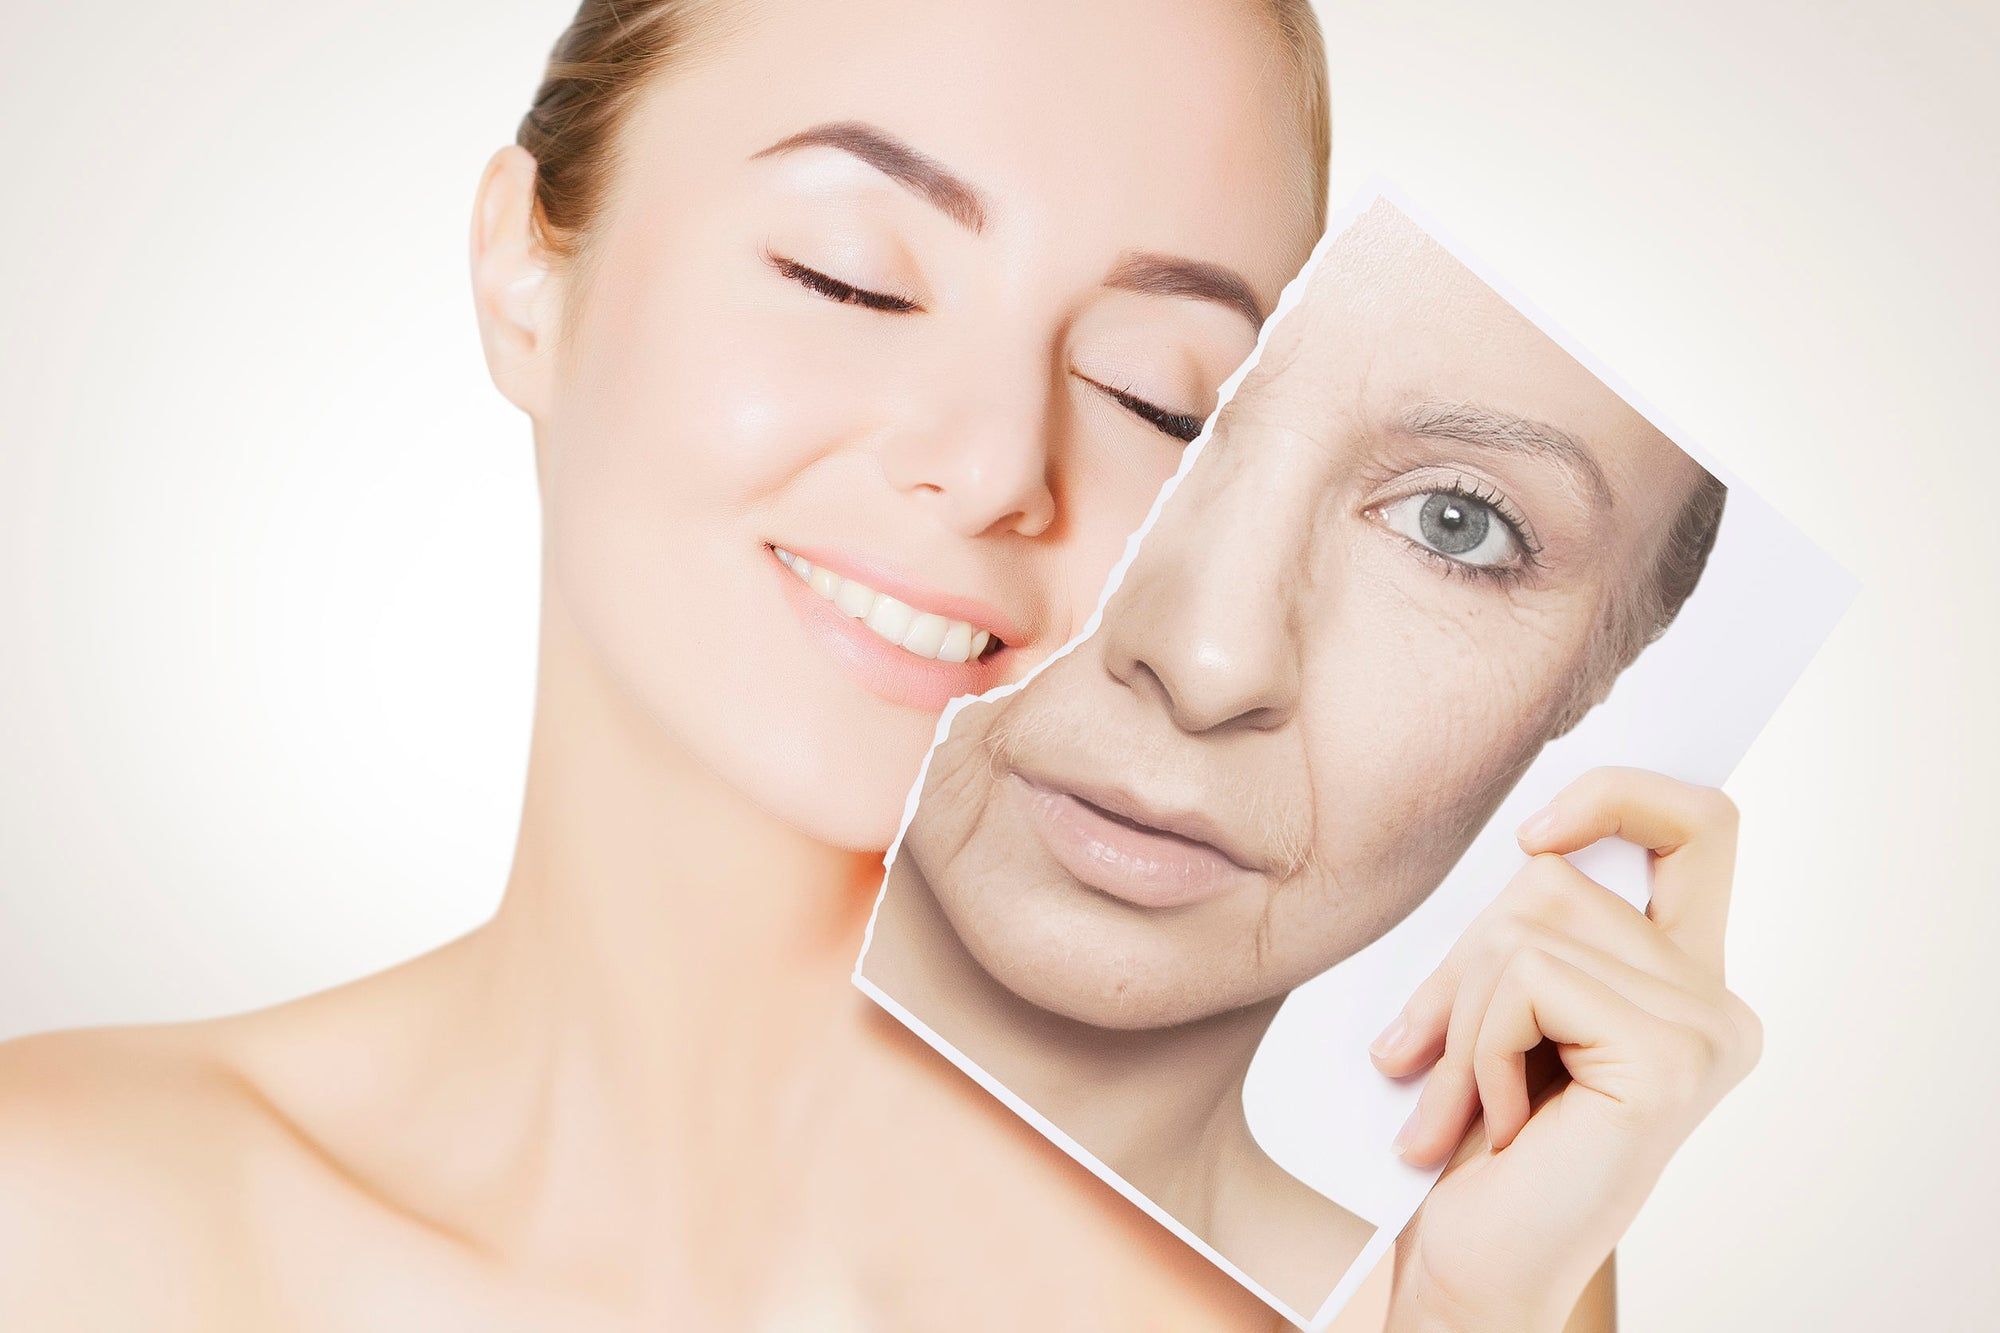 How to Prevent Your Skin from Aging Prematurely